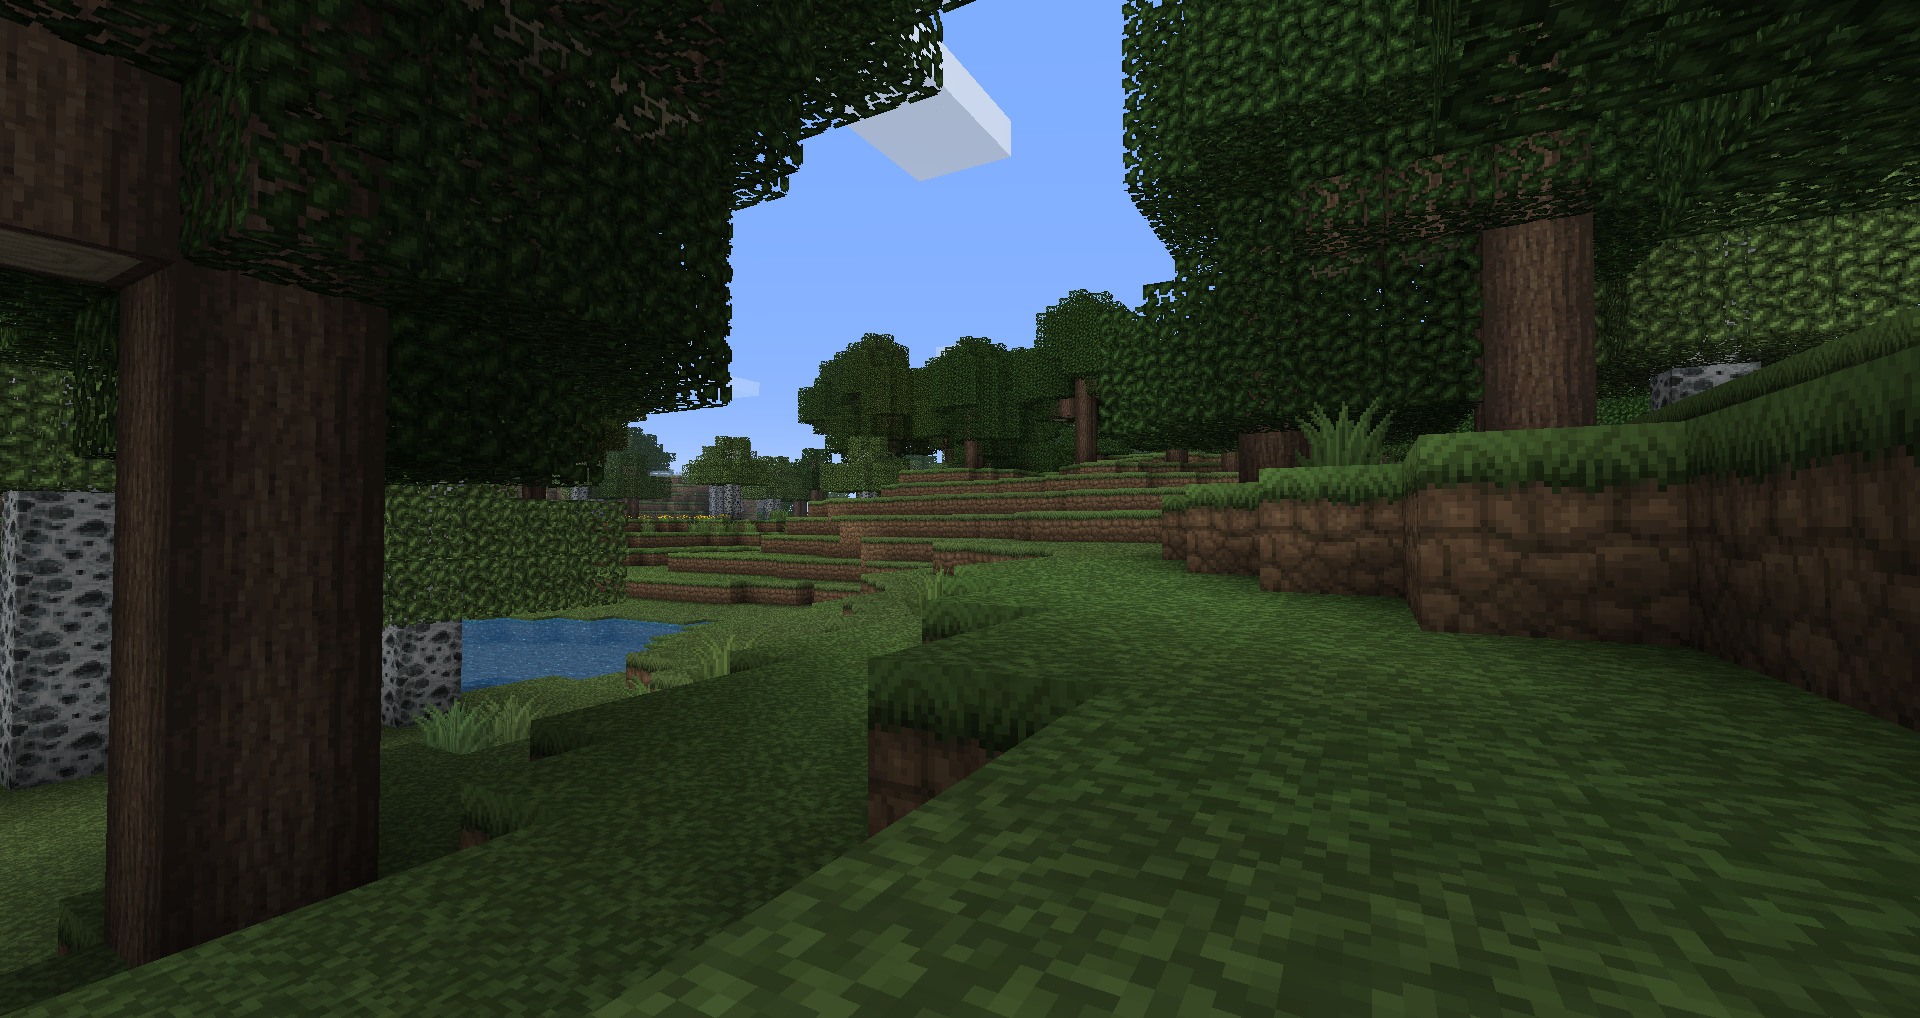 minecraft forests video Games HD Wallpaper